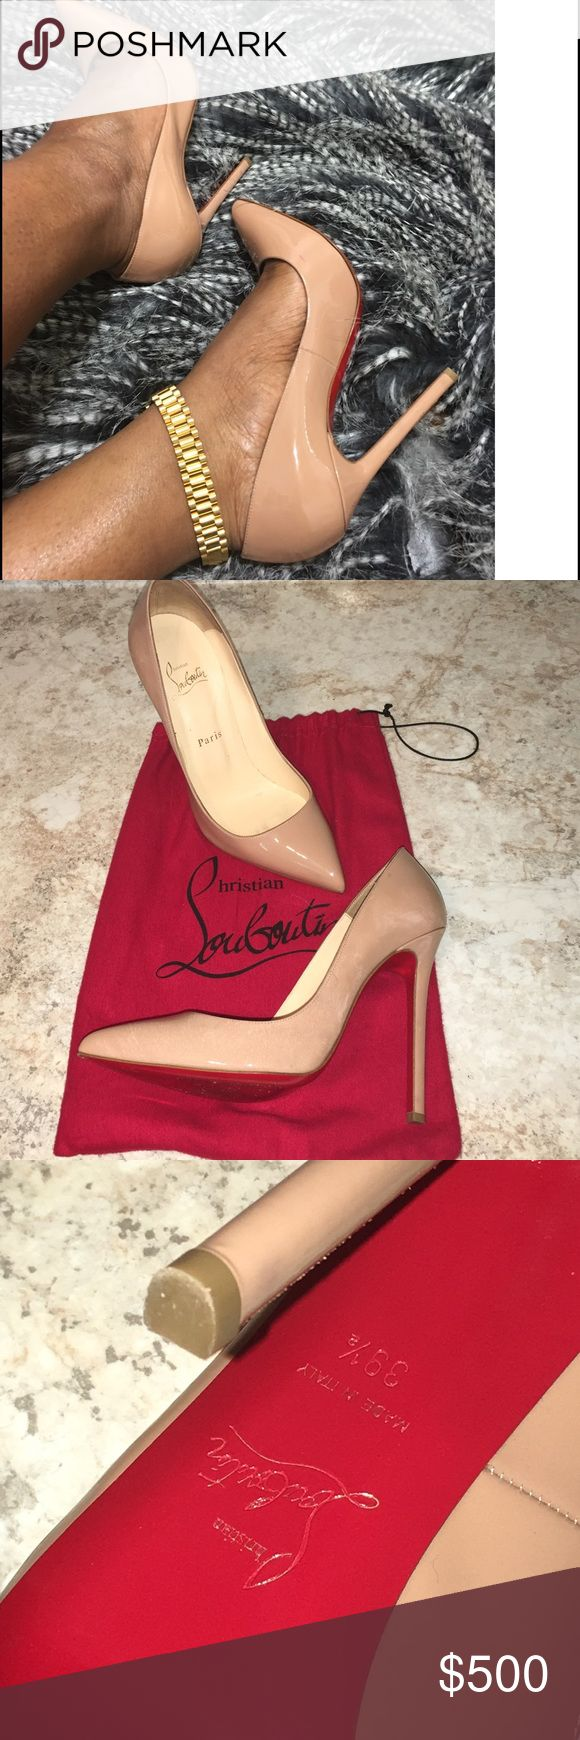 louboutin pigalle plato 120 sizing